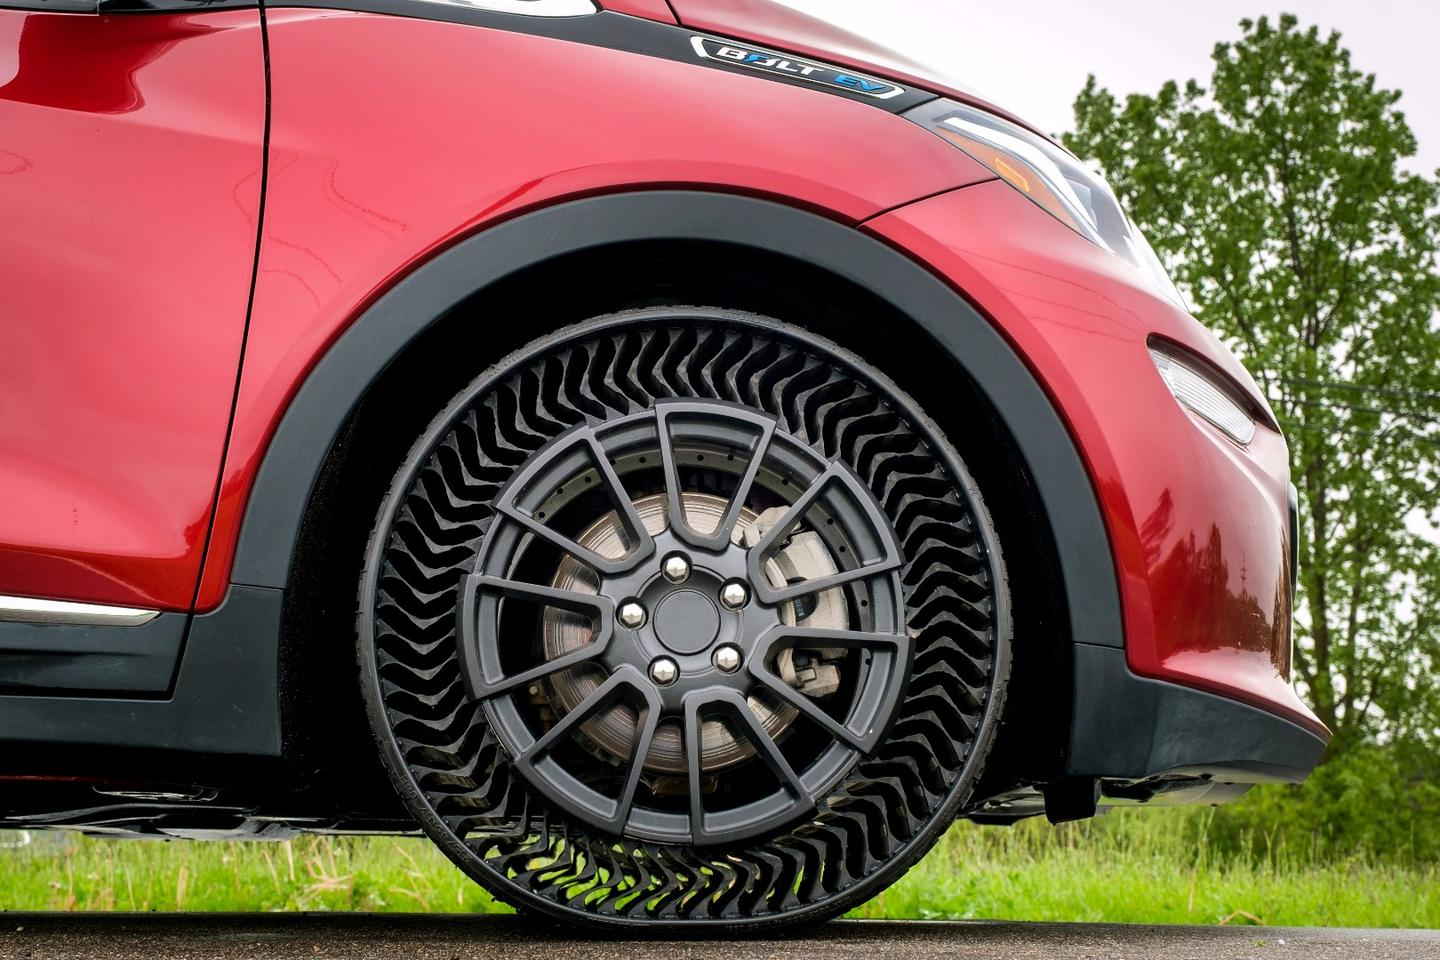 Michelin and GM will be testing the Uptis airless tire on a fleet of Chevrolet Bolt electric cars in Michigan later this year